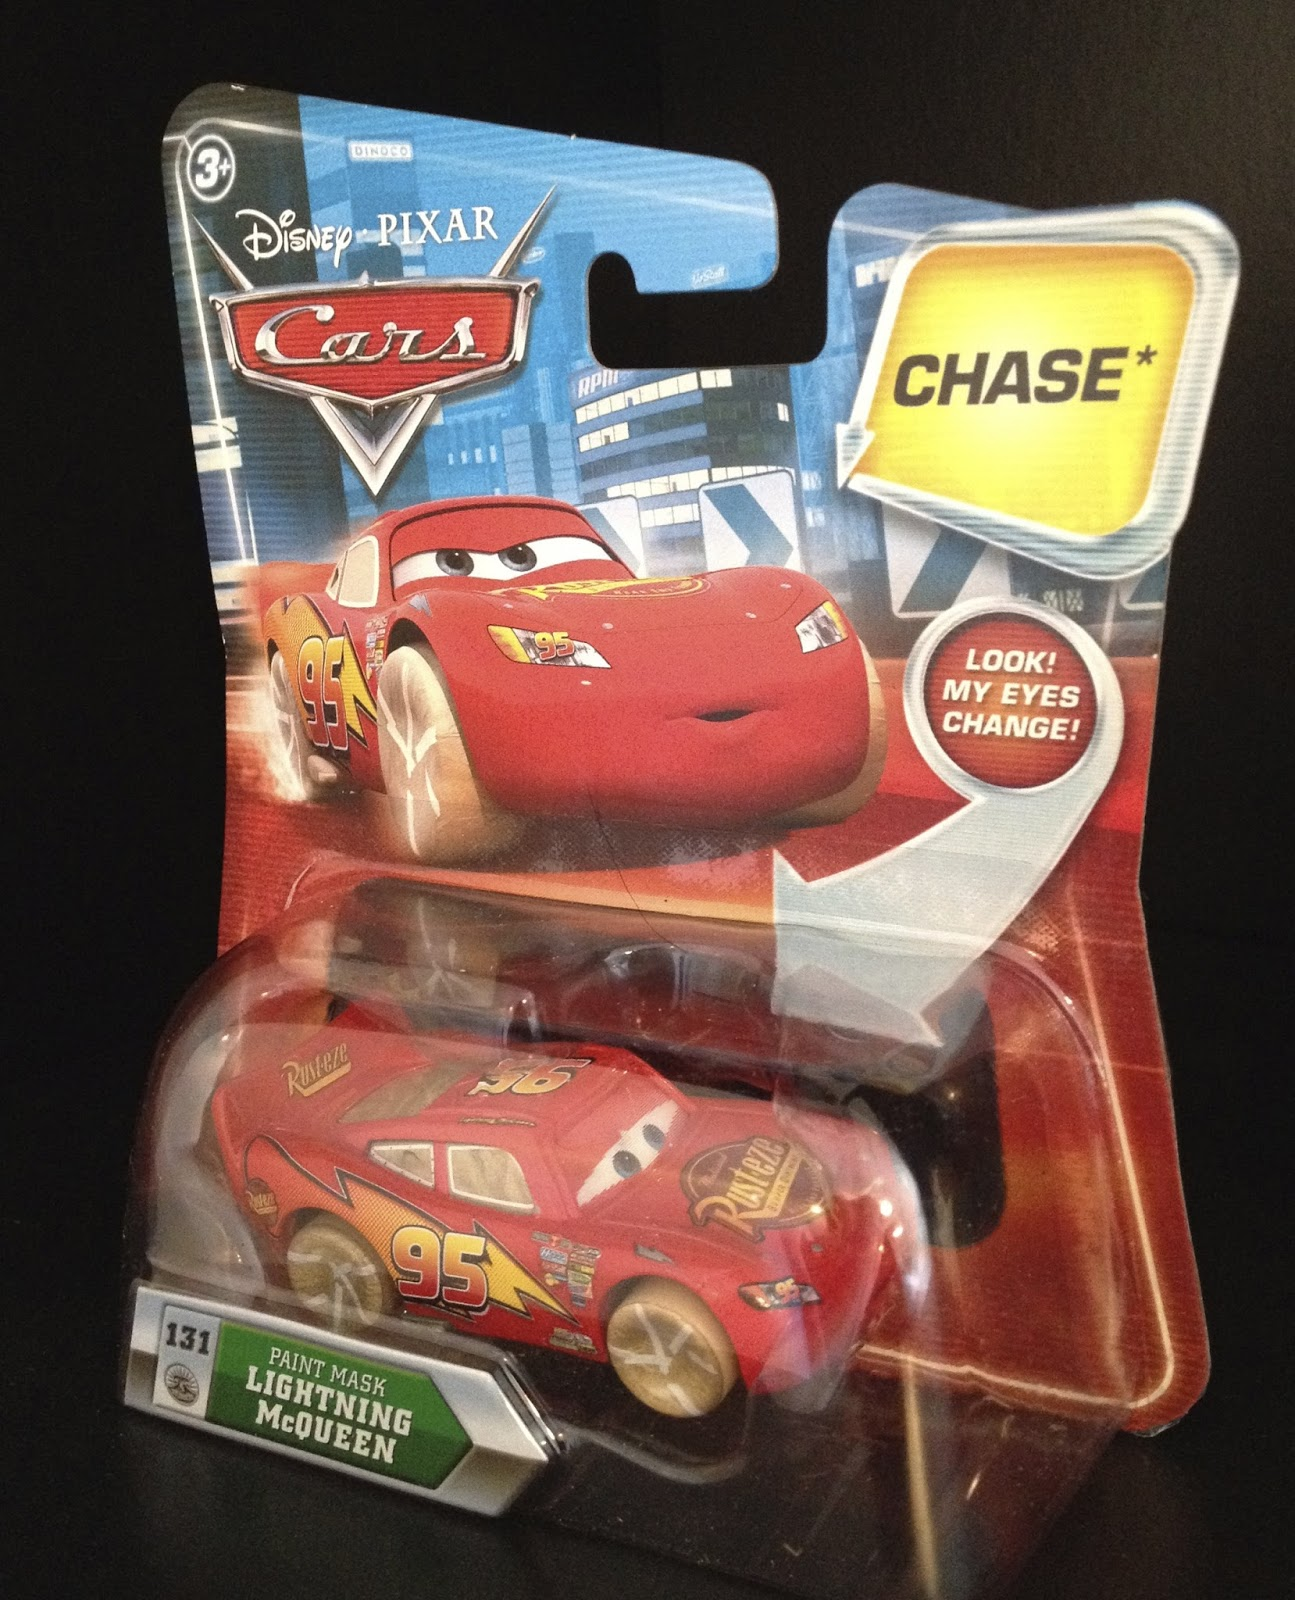 cars paint mask lightning mcqueen